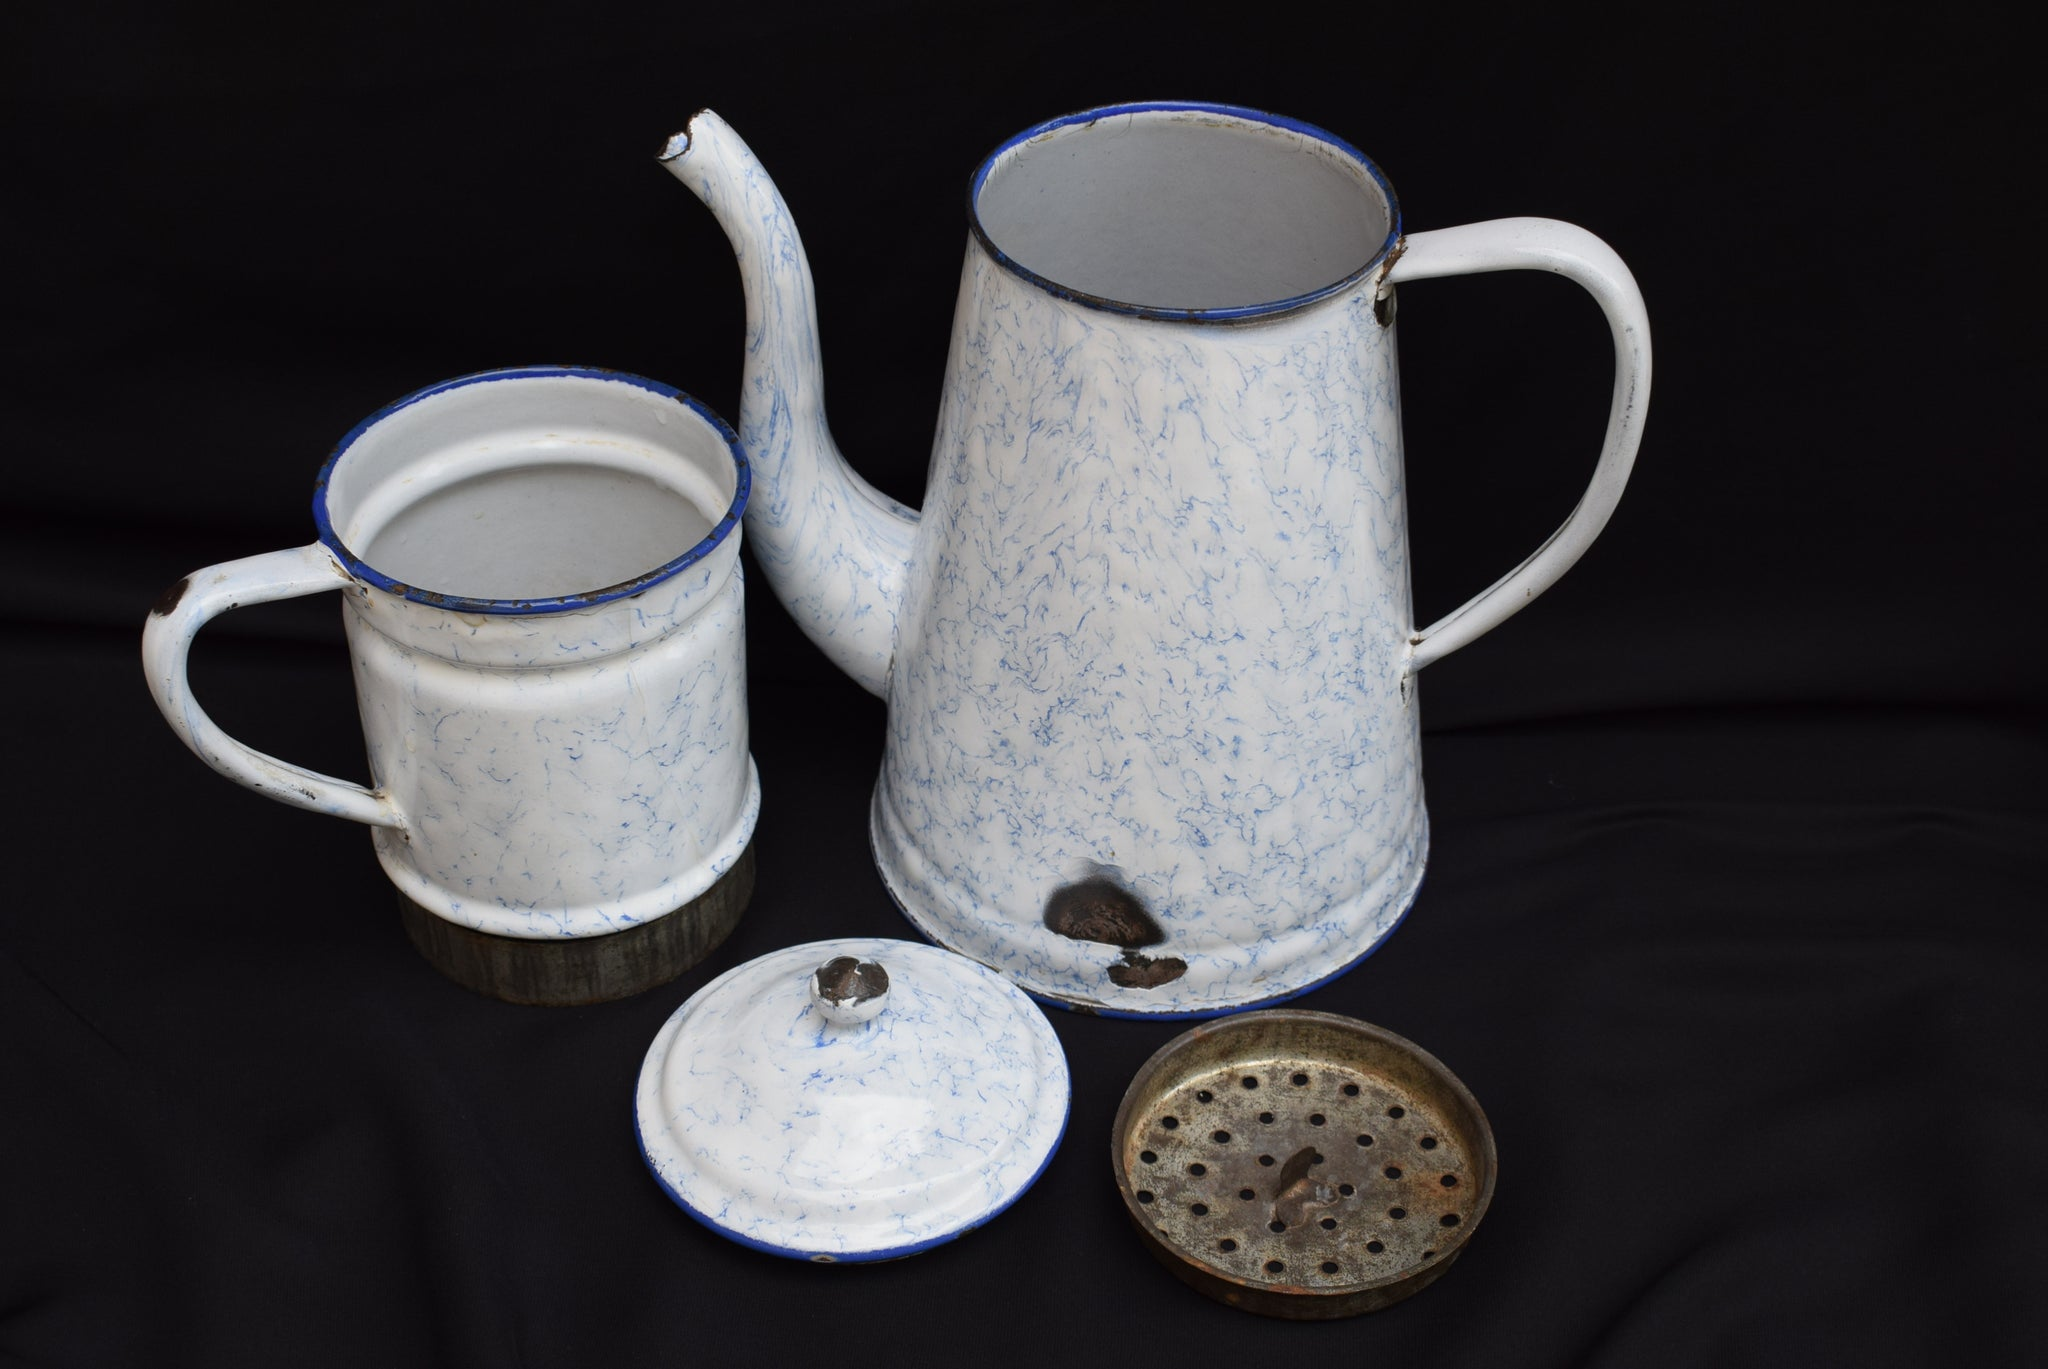 French Vintage Graniteware Enamel Coffee Pot - Charmantiques